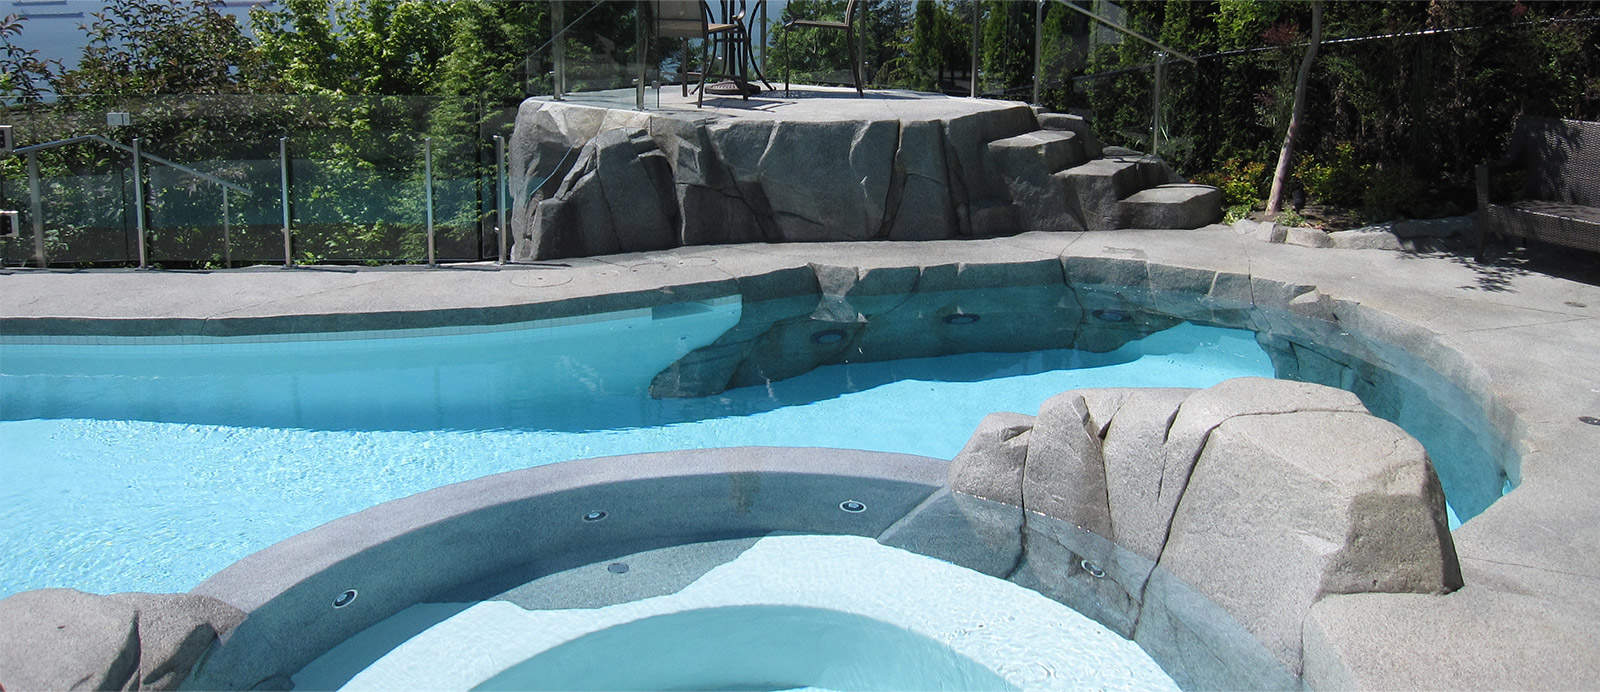 Backyard renovation with hot tub and swimming pool and private patio